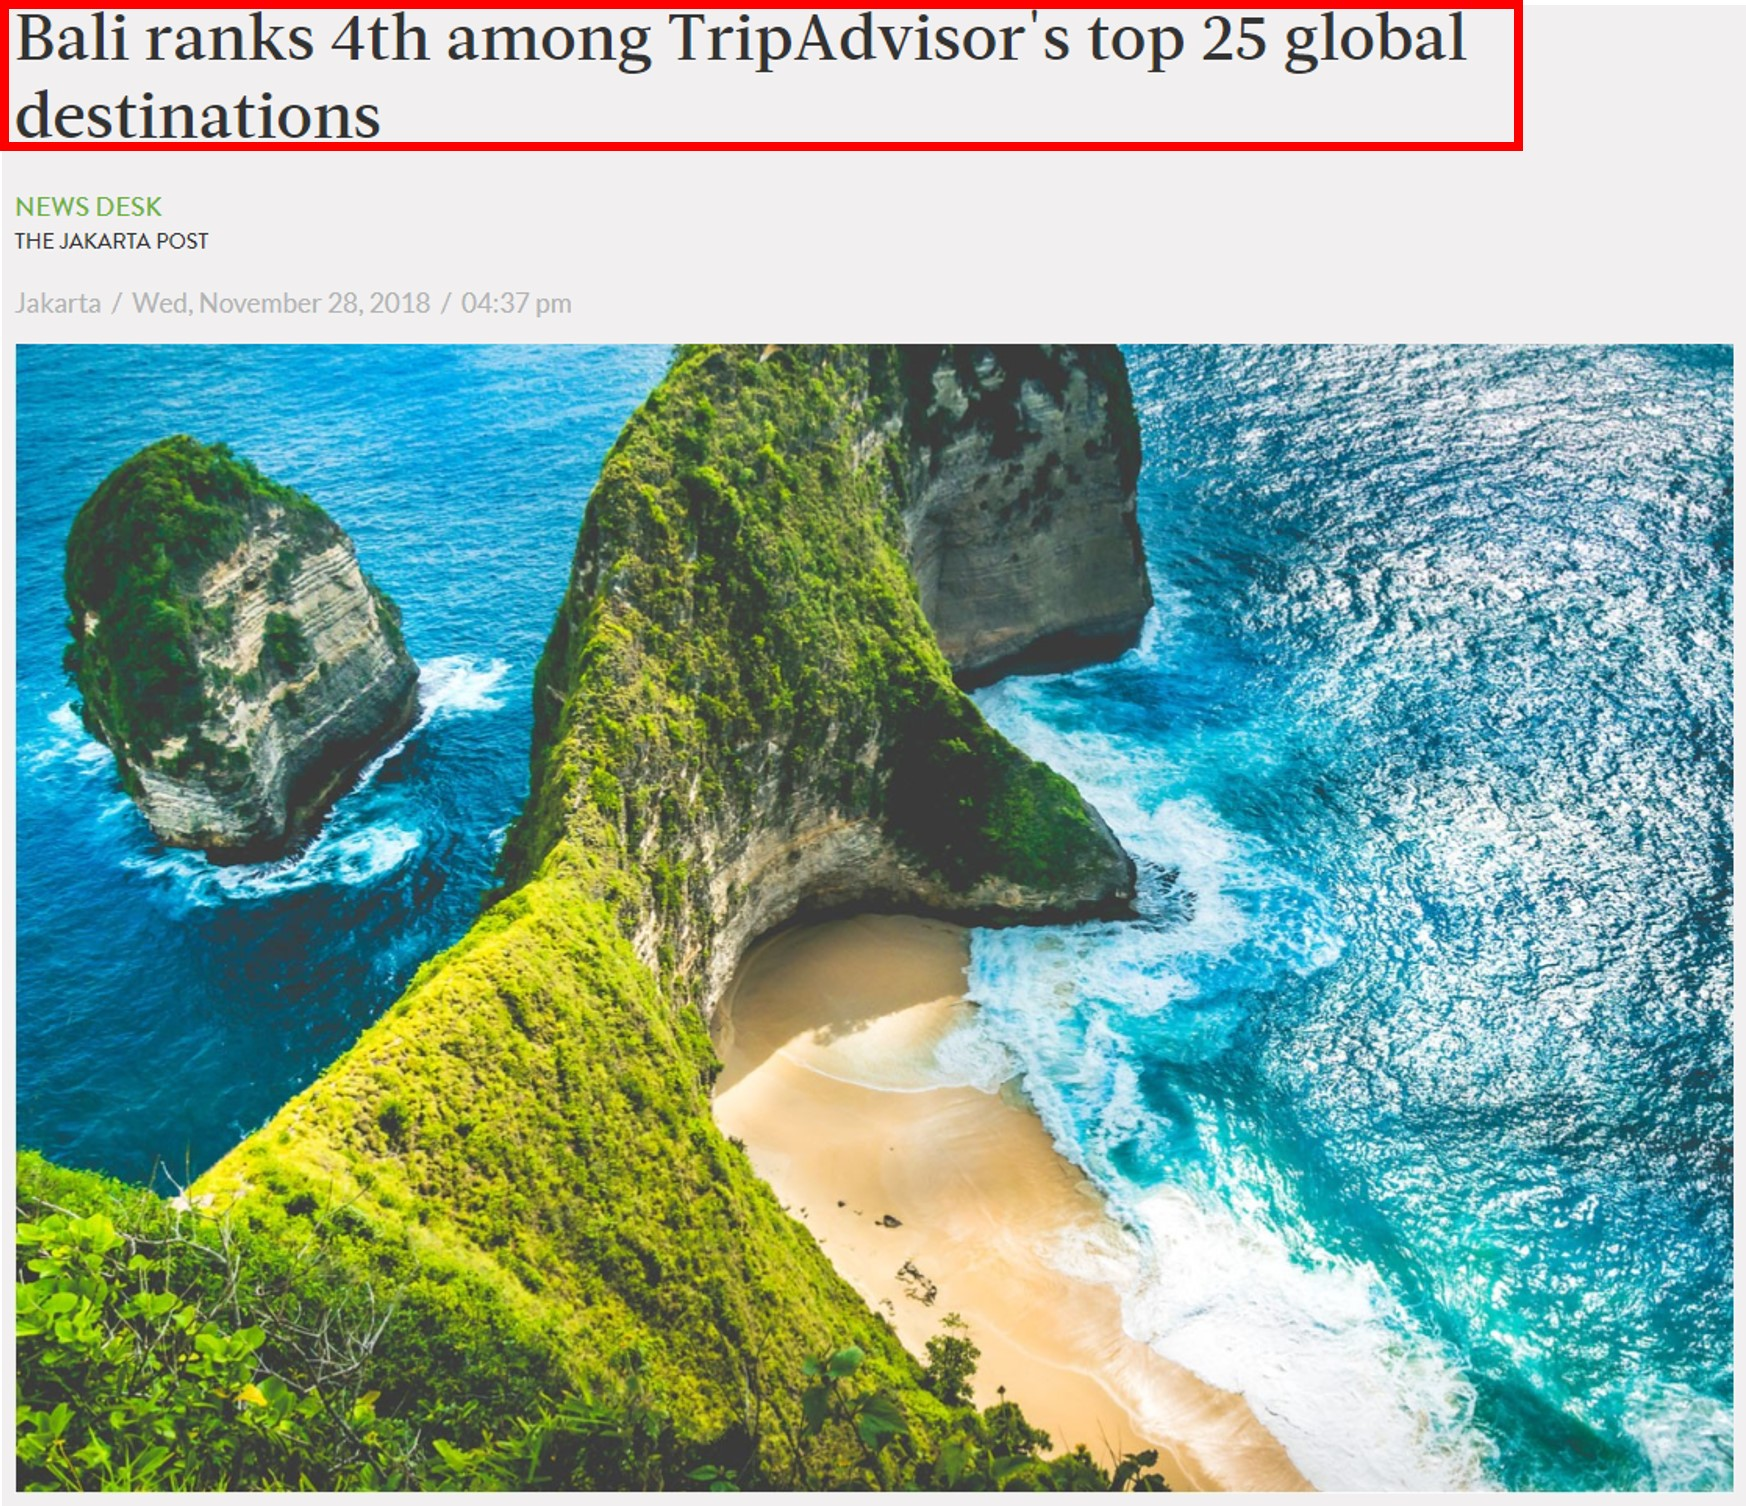 Bali ranks 4th among TripAdvisor's top 25 global destinations